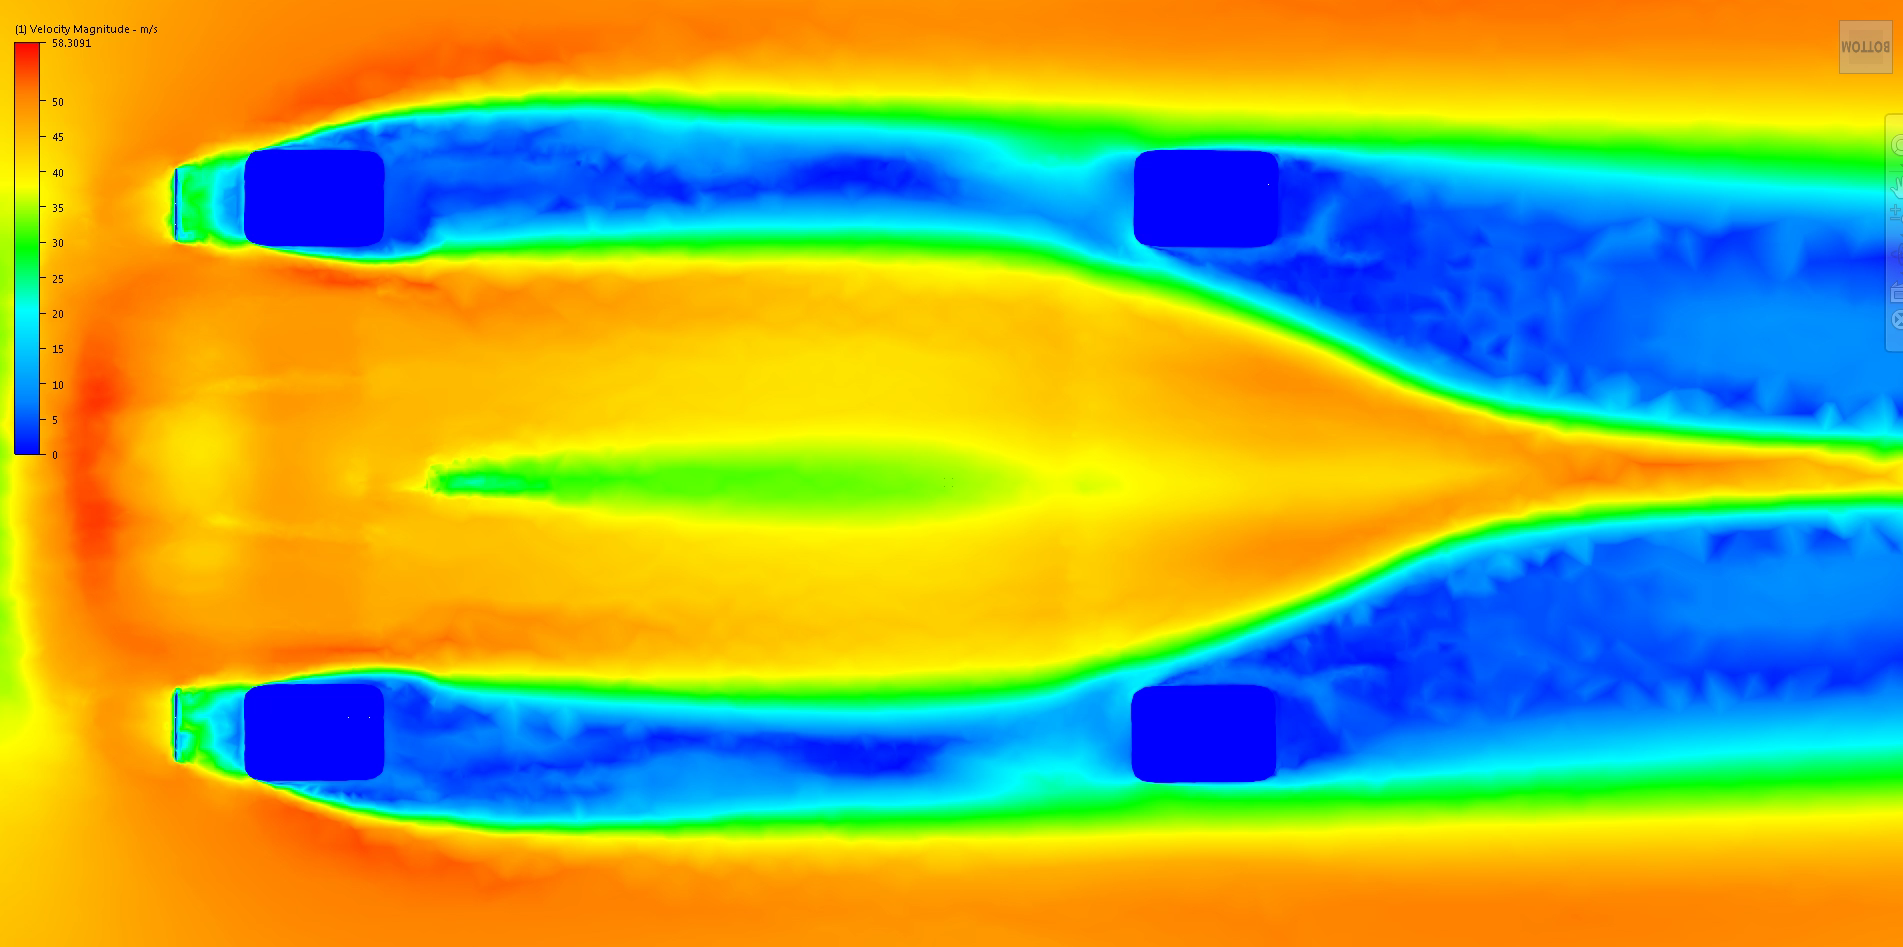 Phase 10 Underbody Velocity Contours.png